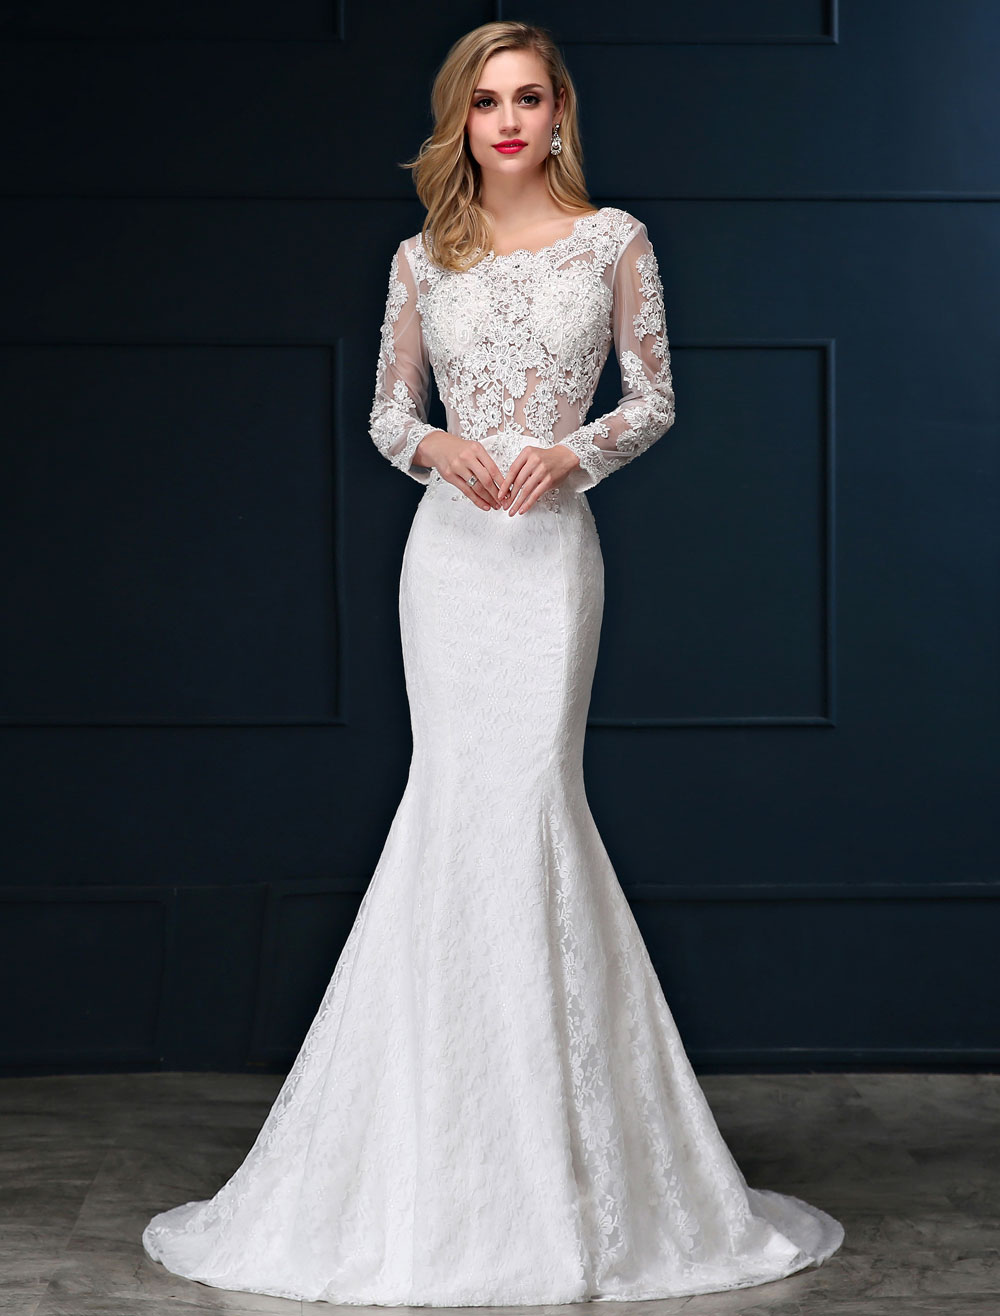 Mermaid Wedding Dresses Lace Beach Bridal Dress Long Sleeve Ivory Open Back Beaded Illusion Wedding Gown With Train